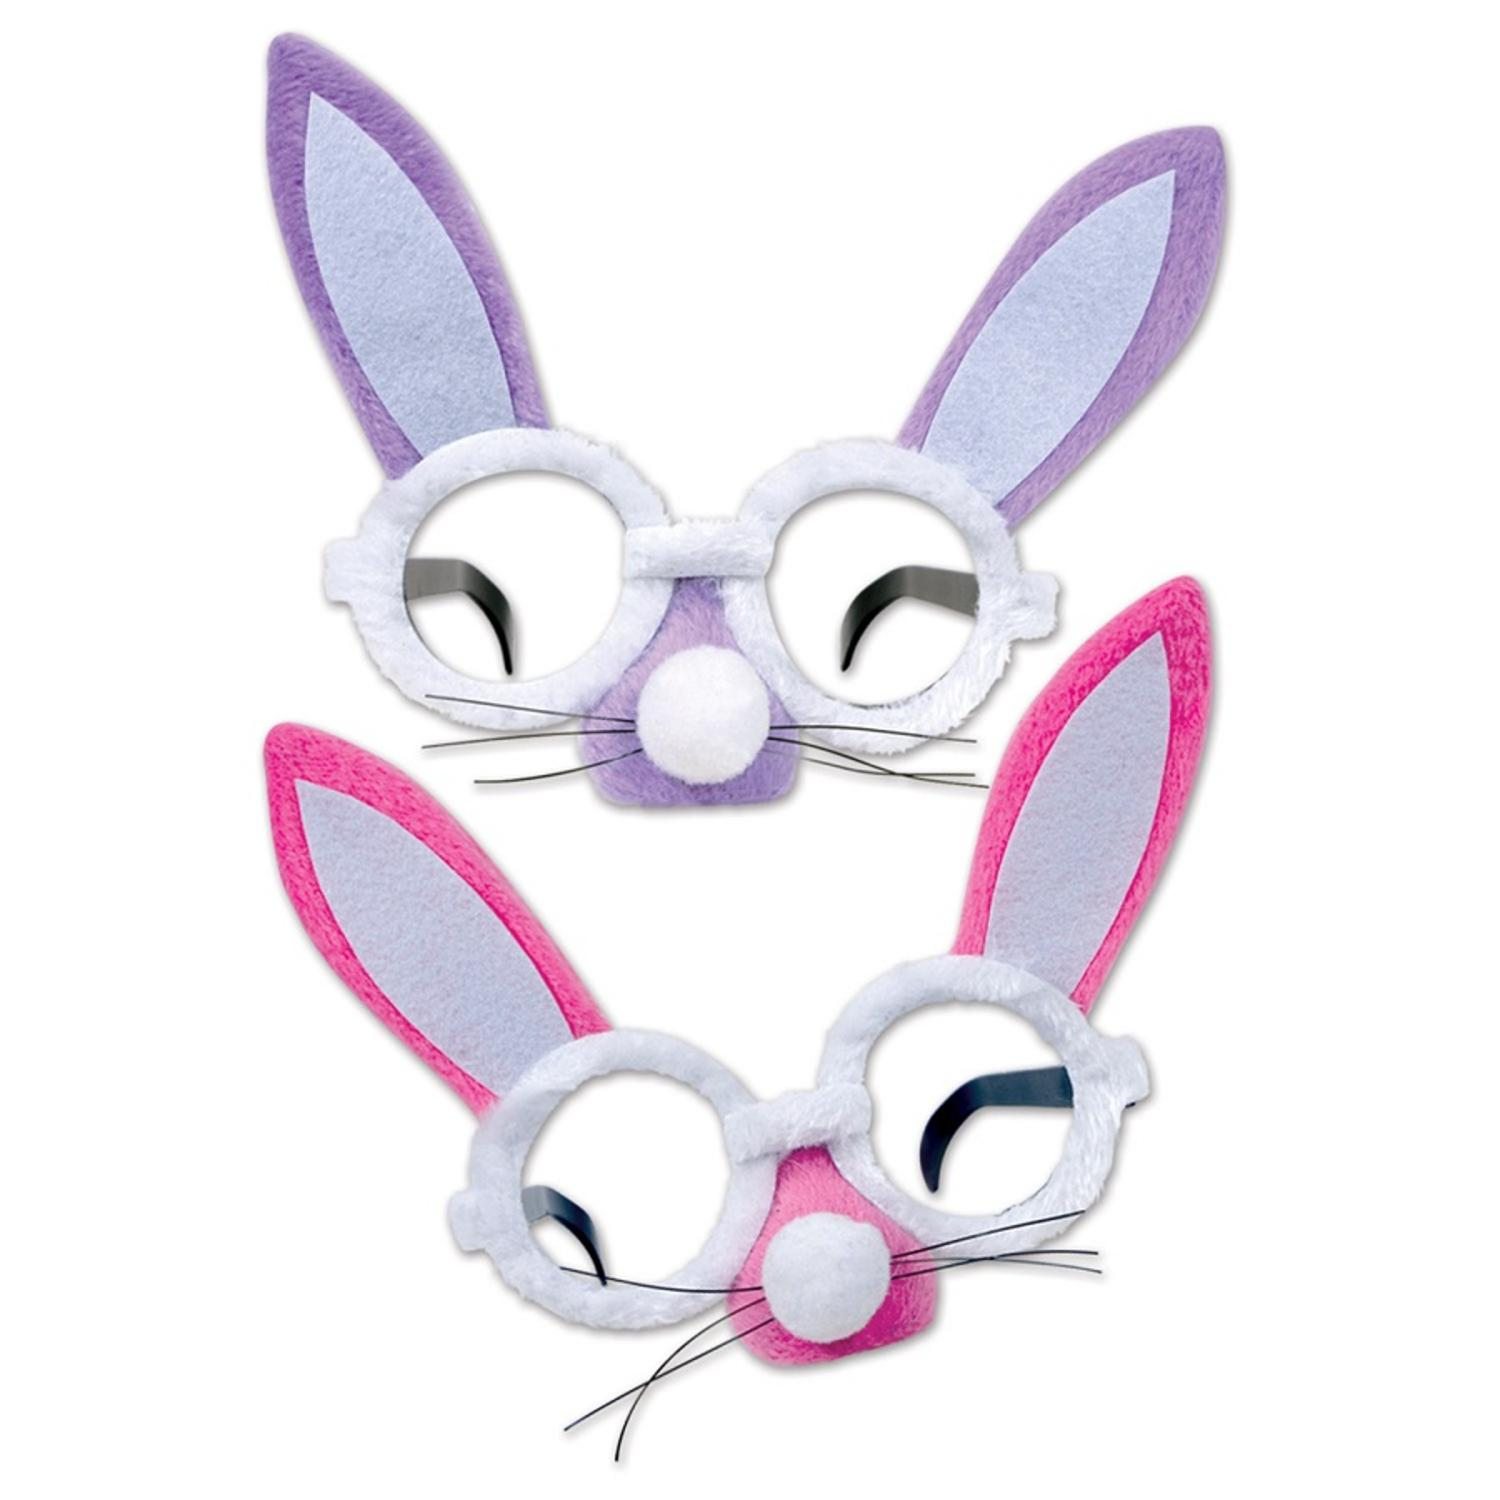 Pack of 12 Lavender and Pink Plush Bunny Glasses Easter Party Favors